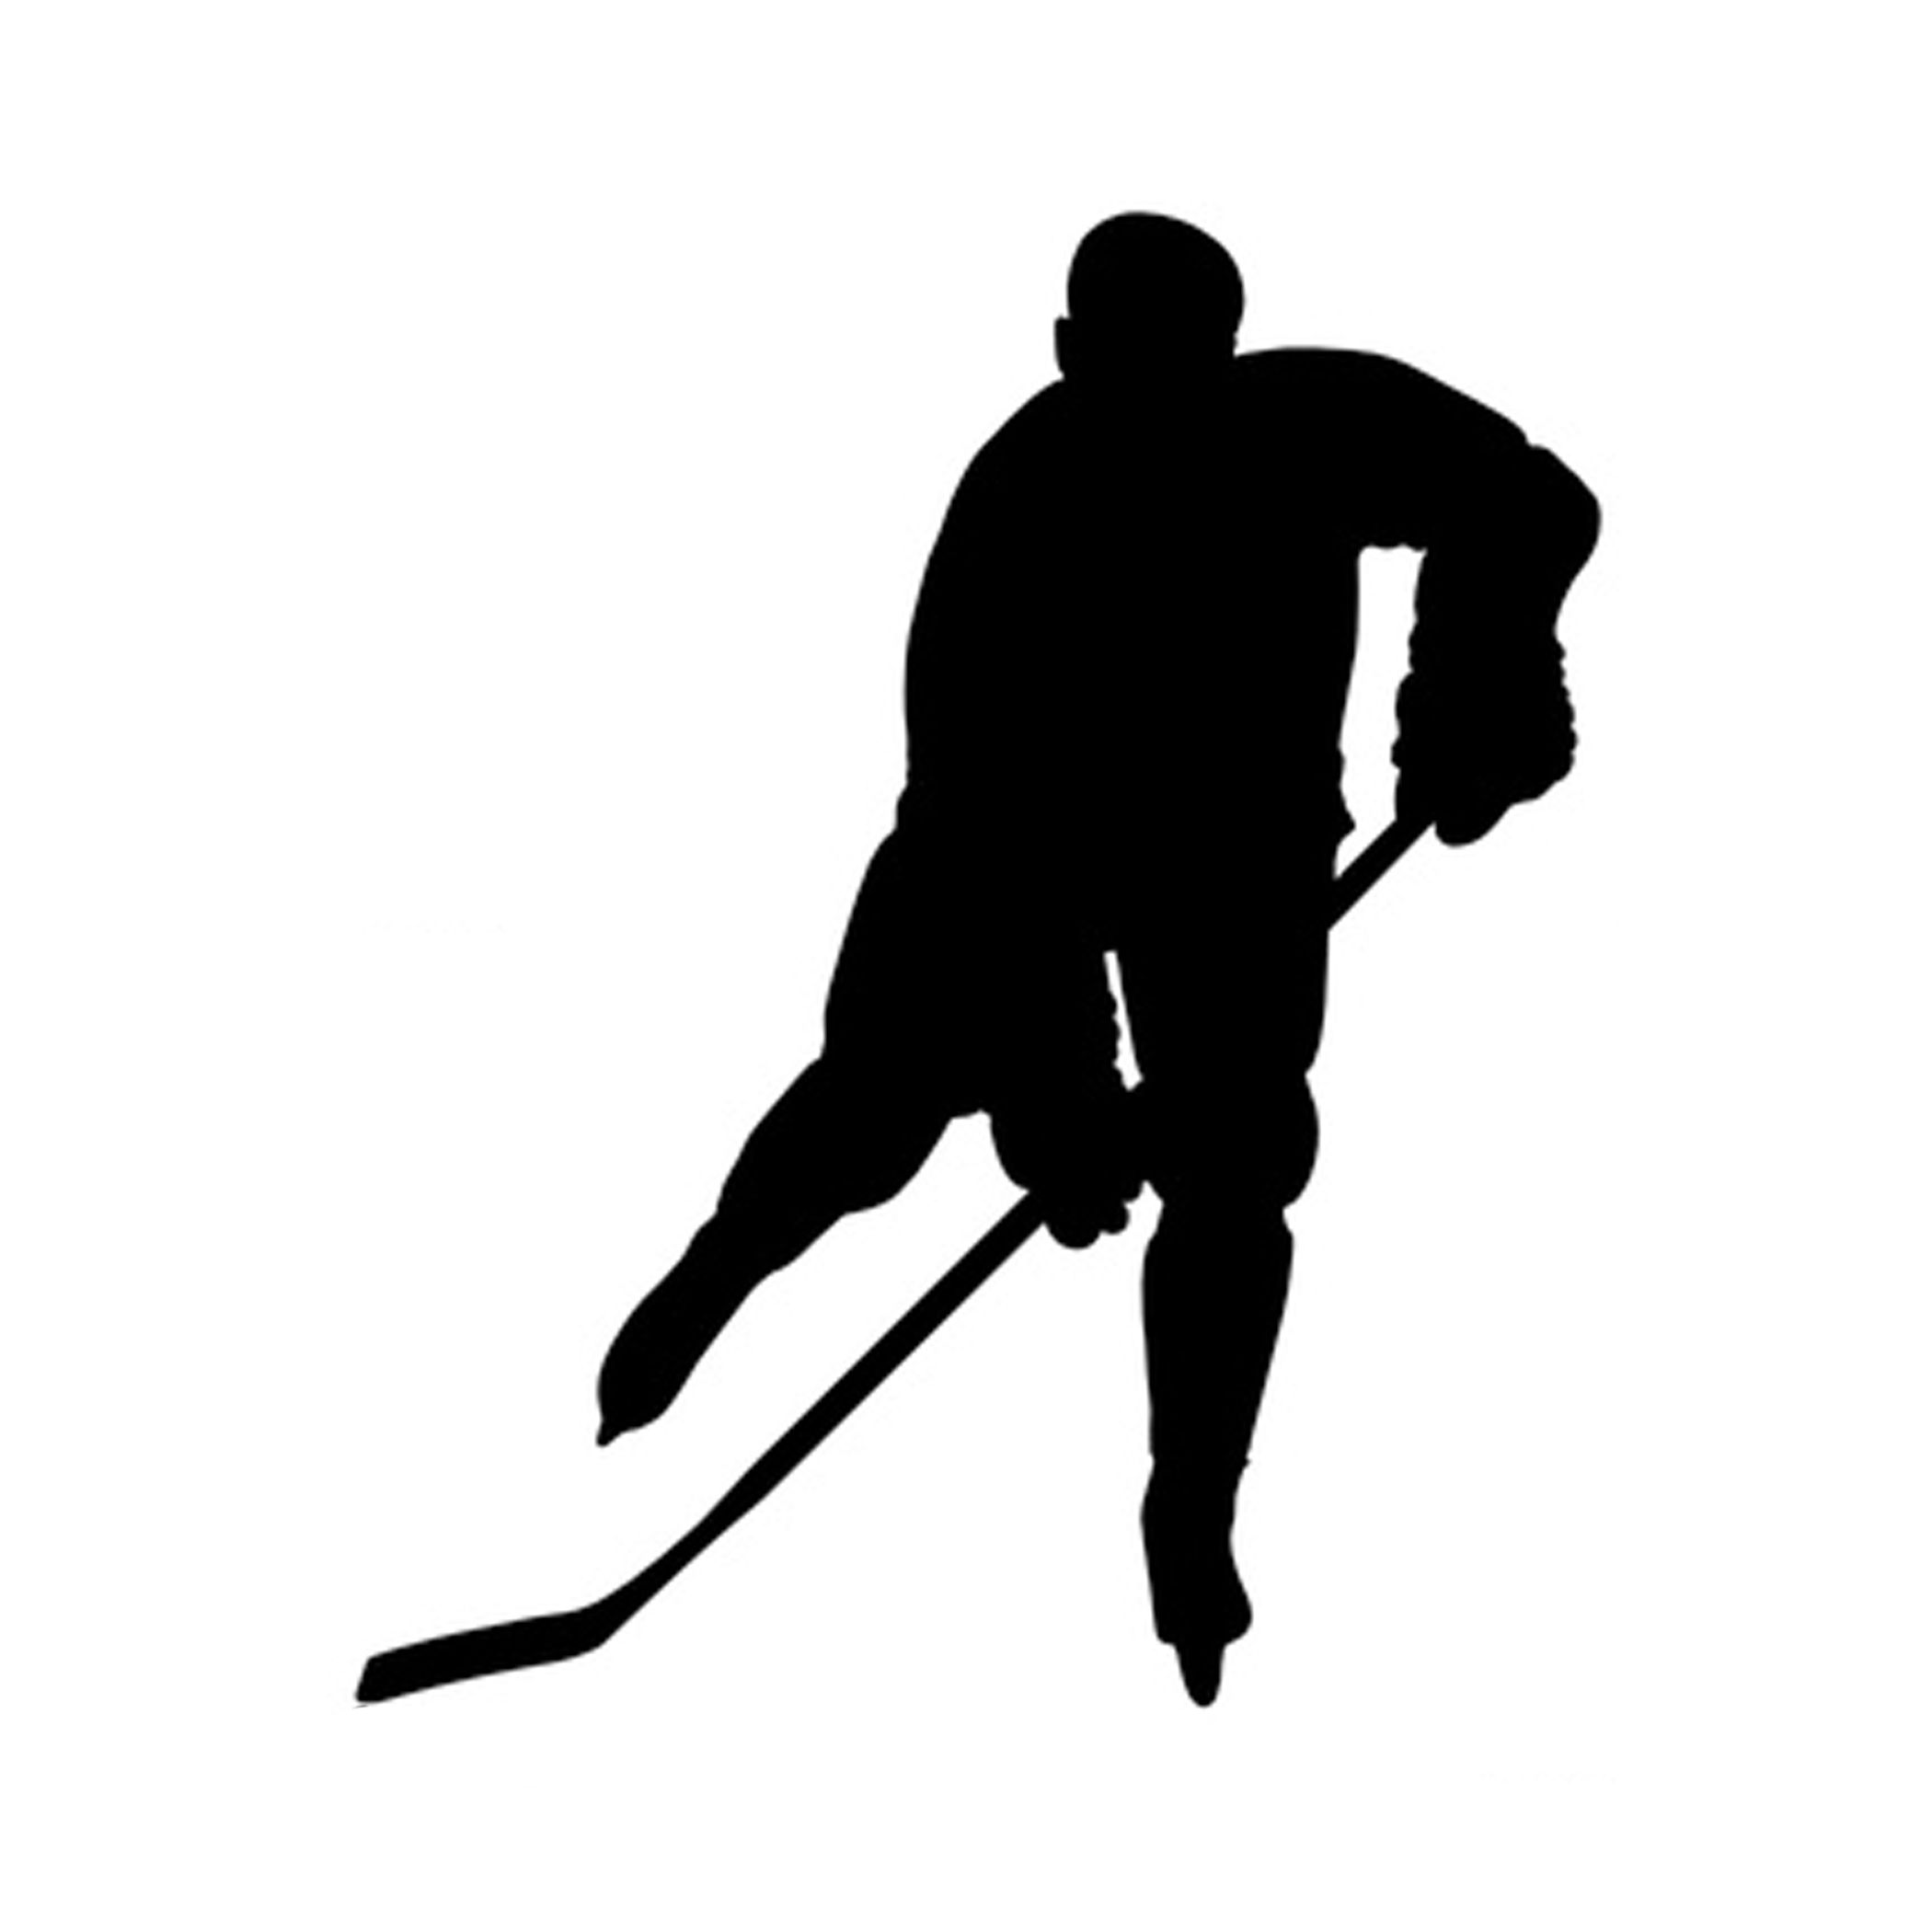 Hockey player silhouette clipart banner freeuse download free svg files | To download the free SVG file, click here ... banner freeuse download